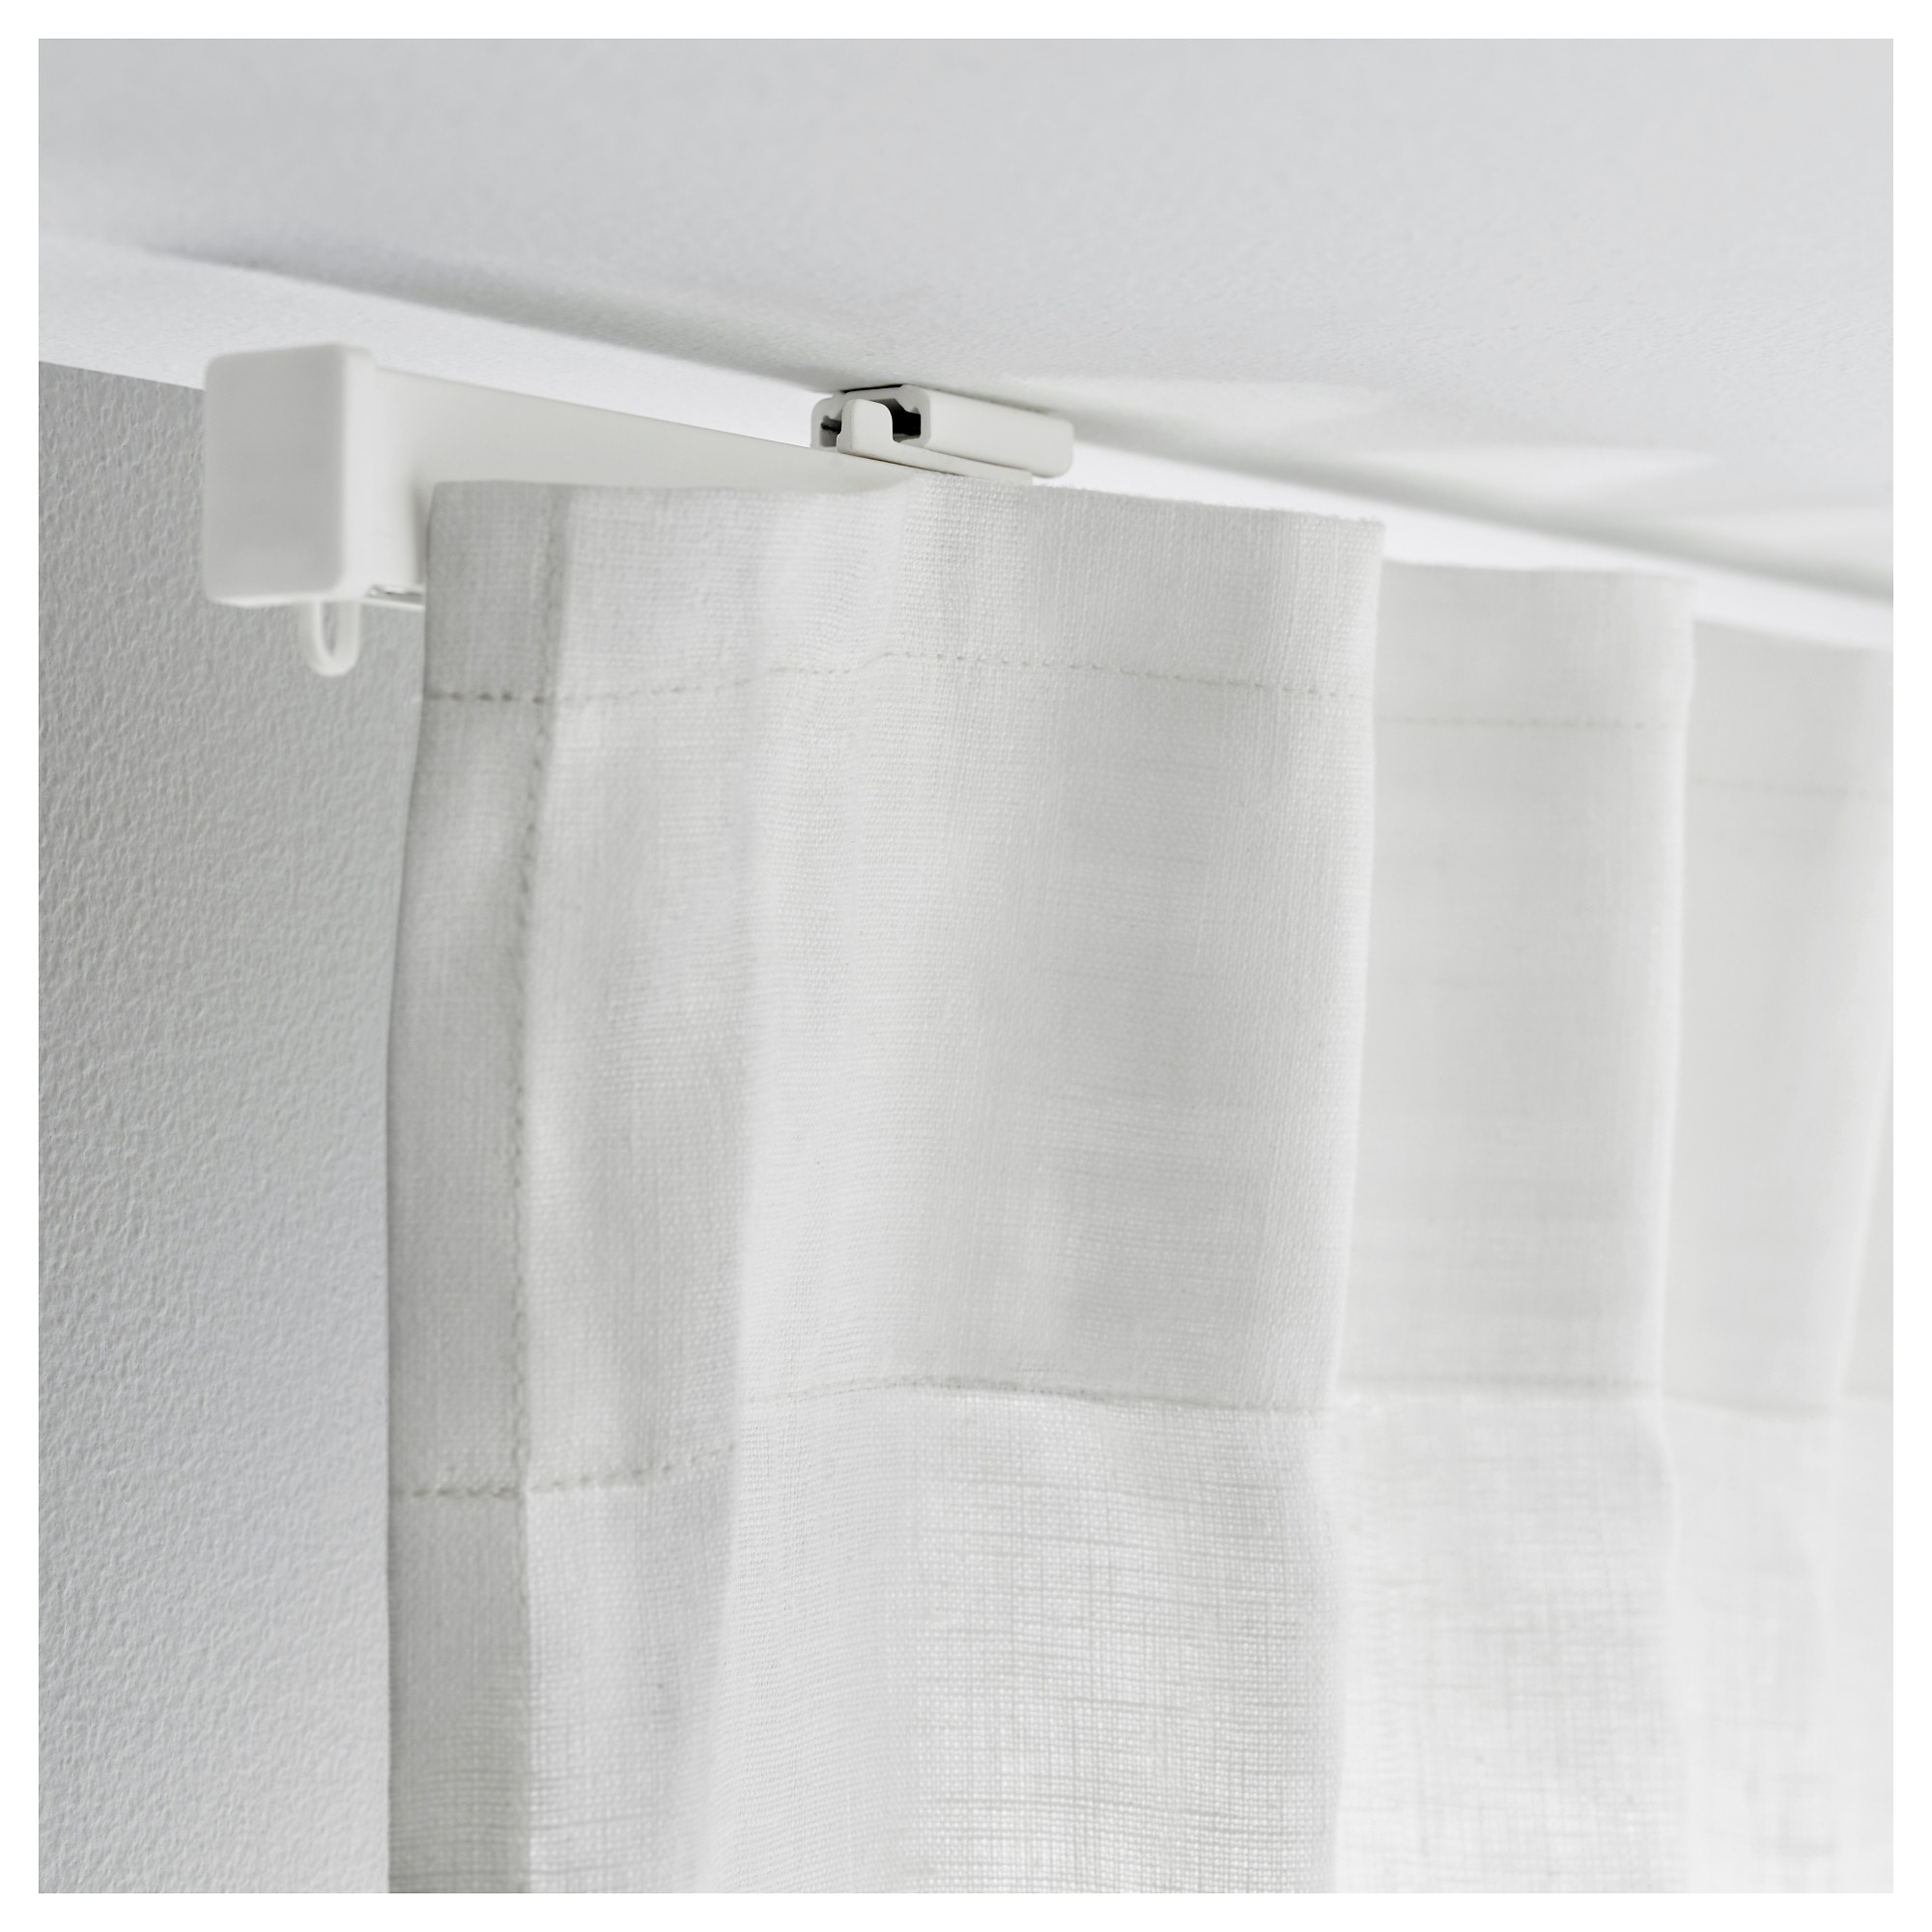 track mounted hide heater pin a our found curtains kvartal ceiling curtain way to water ikea from